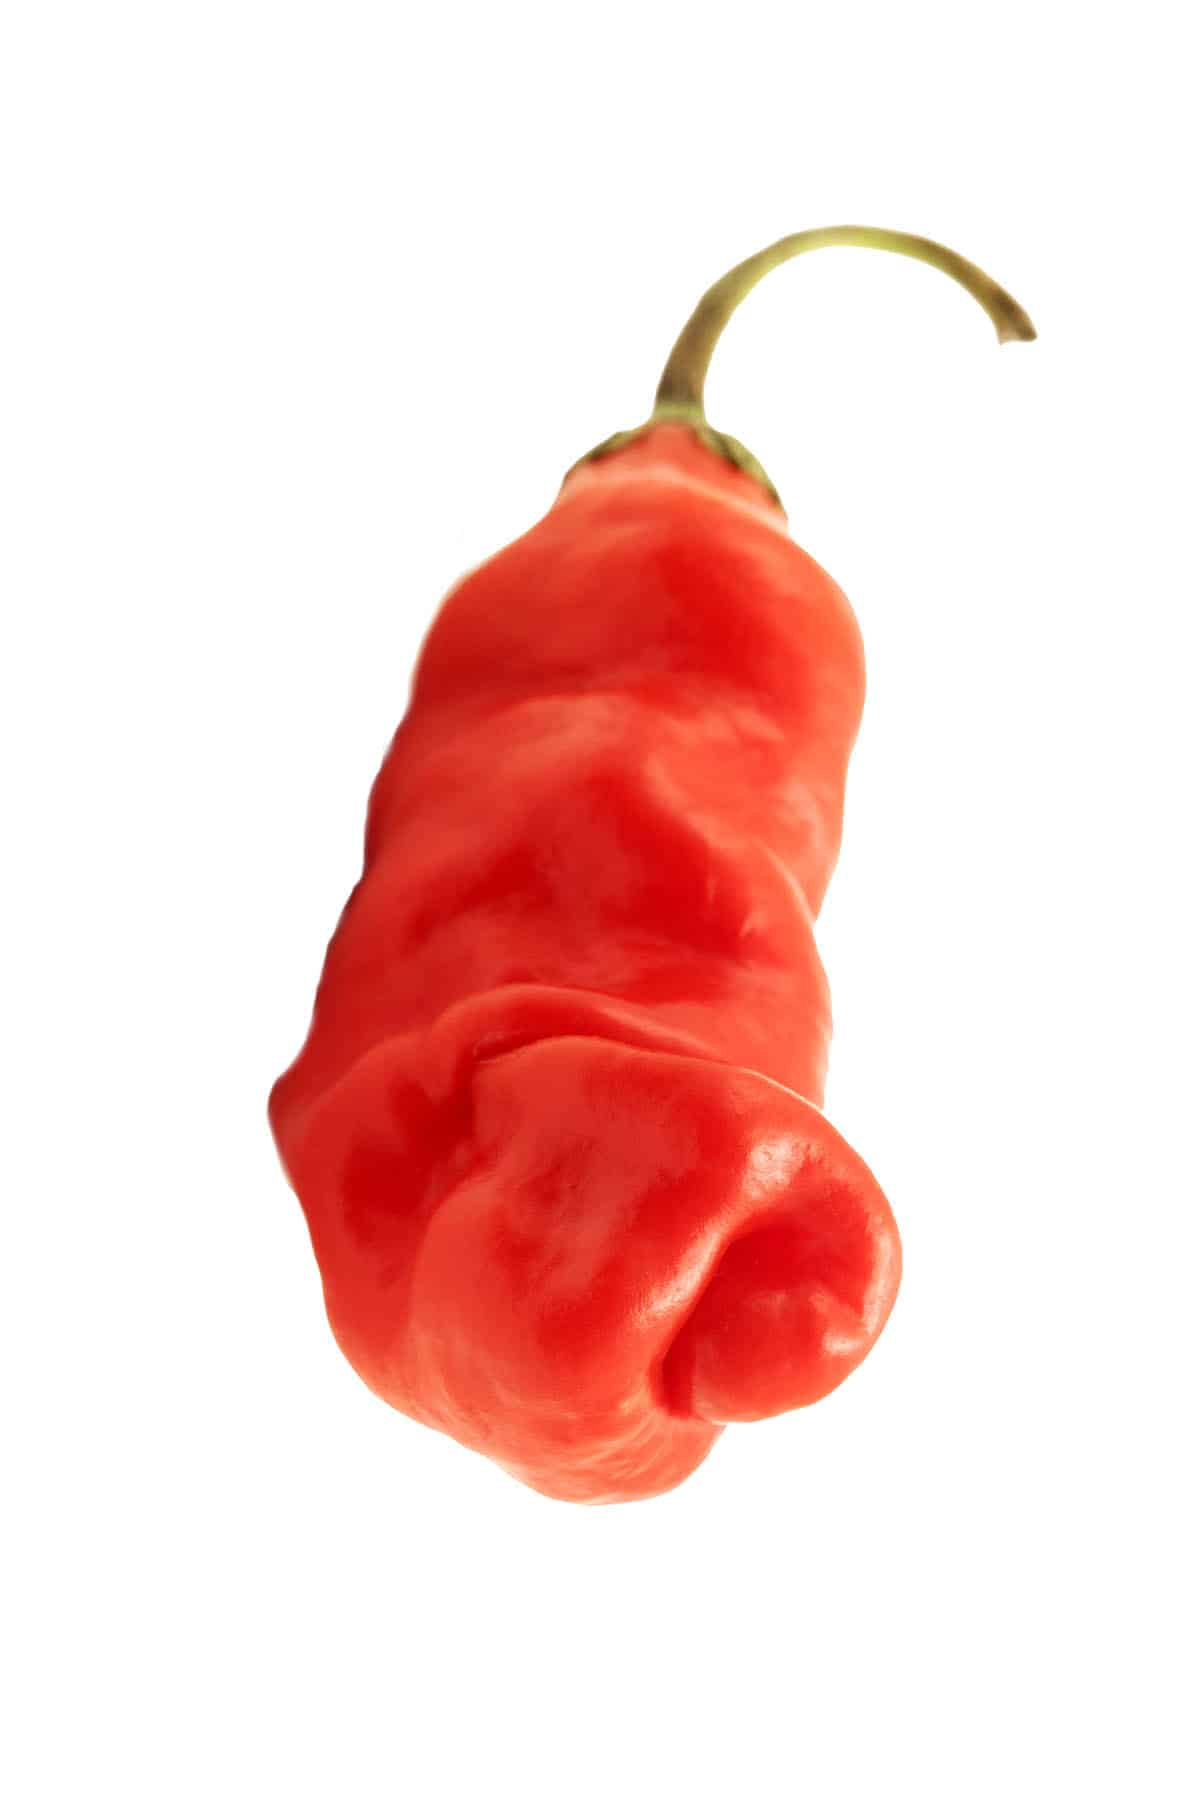 Peter Pepper: The Oddly Shaped Chili Pepper